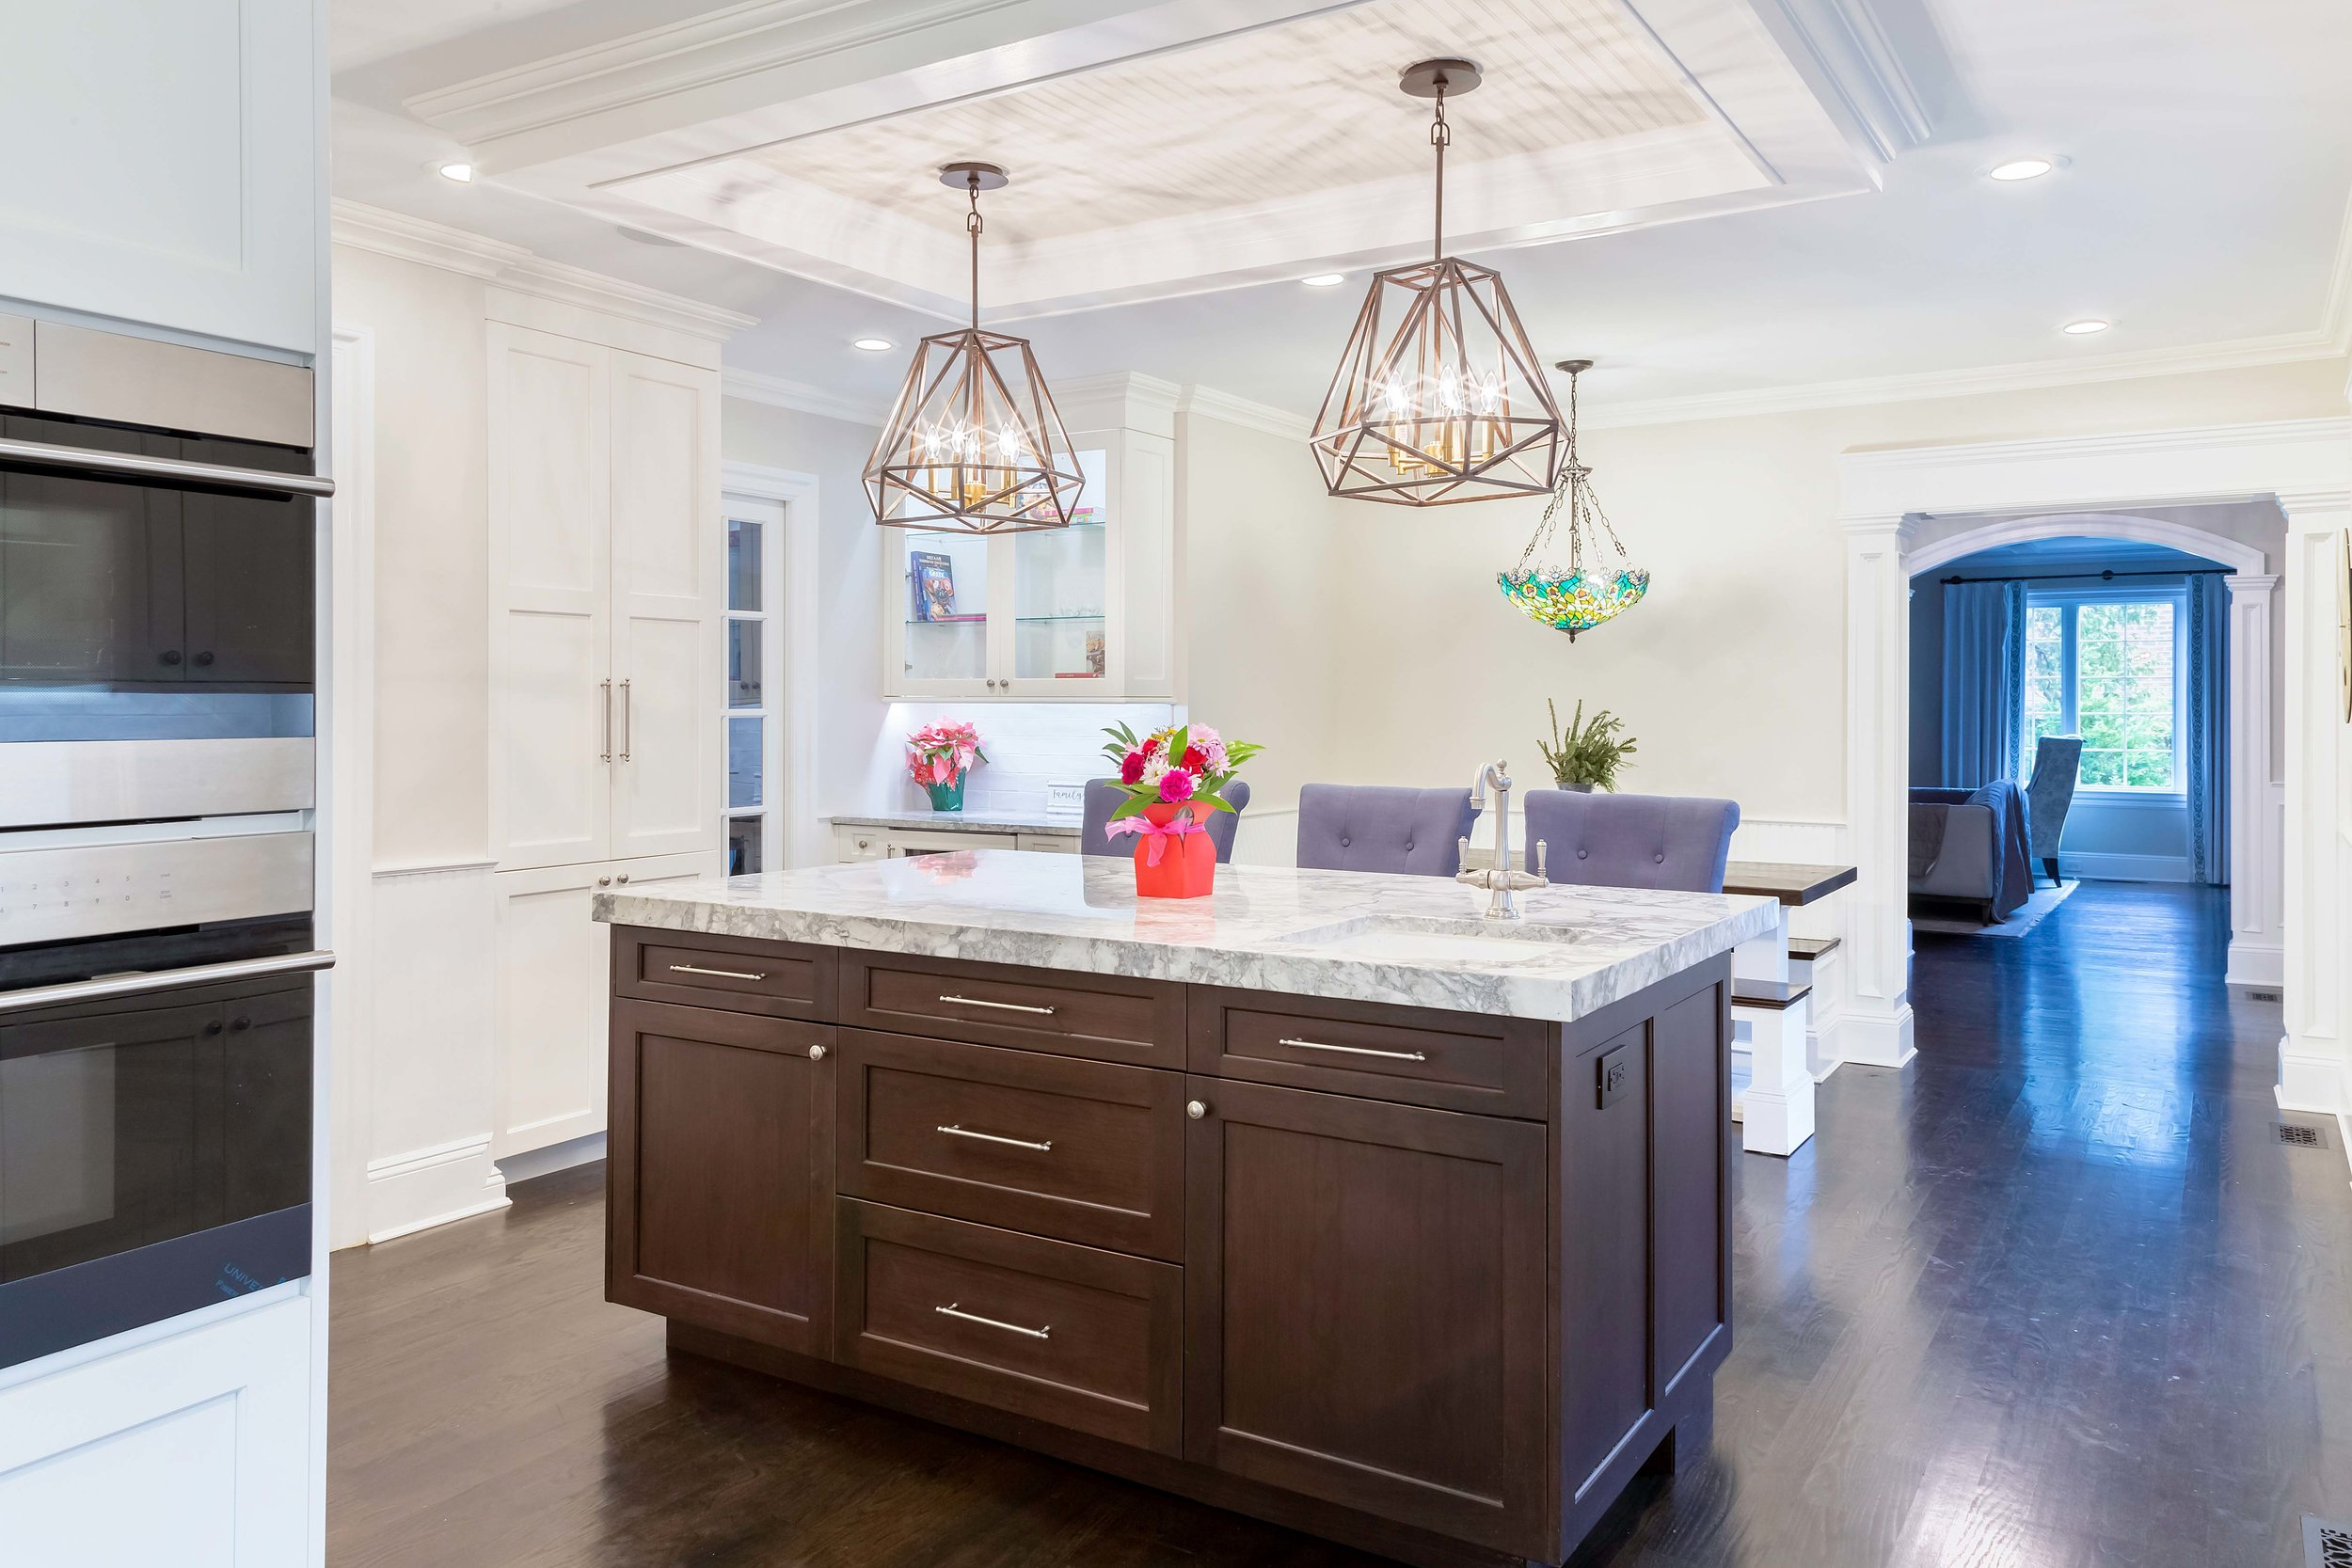 Transitional kitchen with cherry center island with contemporary light fixtures and tray ceiling